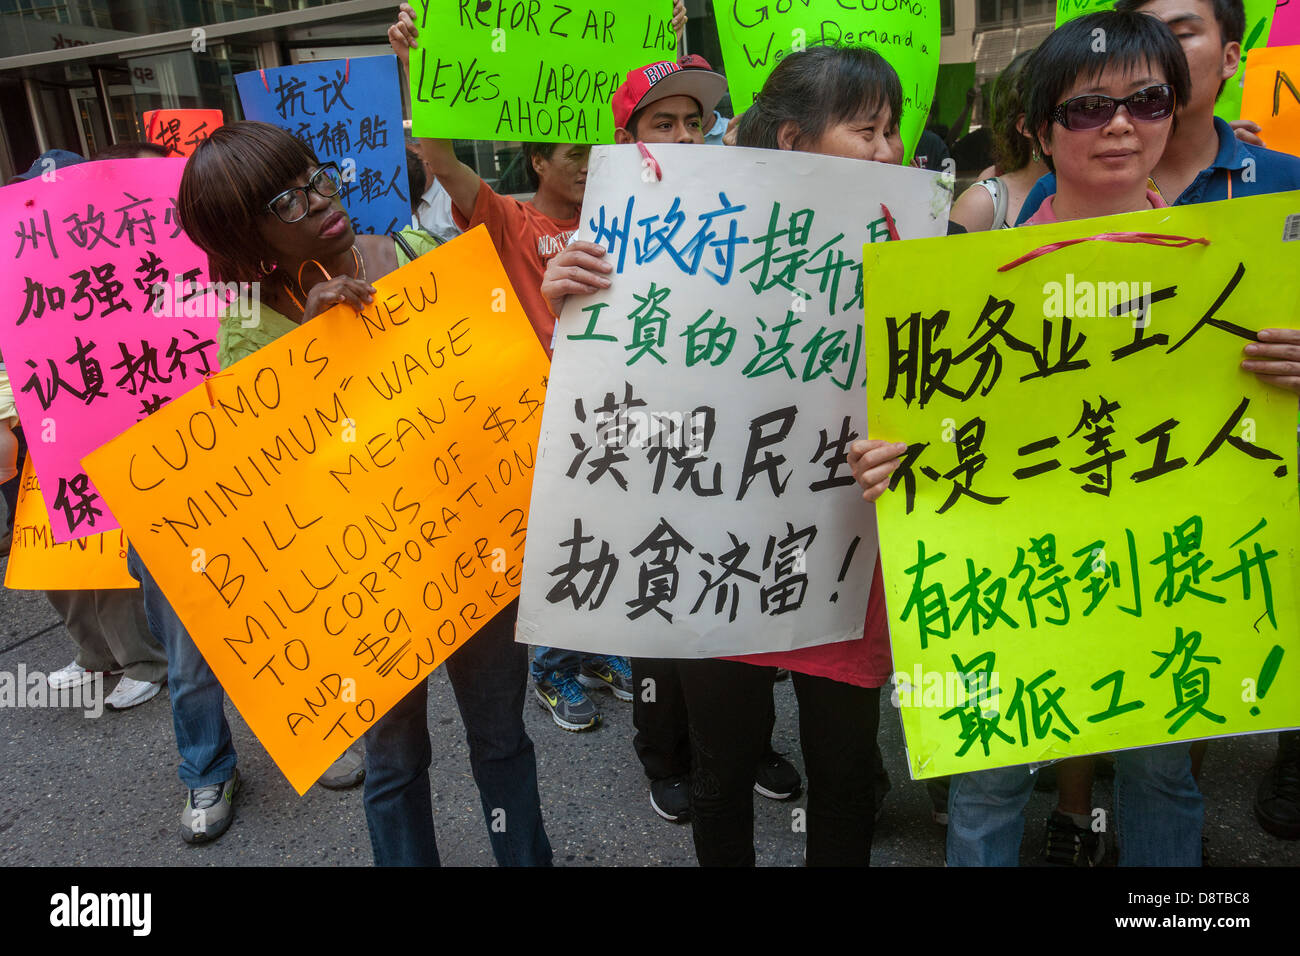 Minimum wage workers and their supporters rally to raise the minimum wage - Stock Image